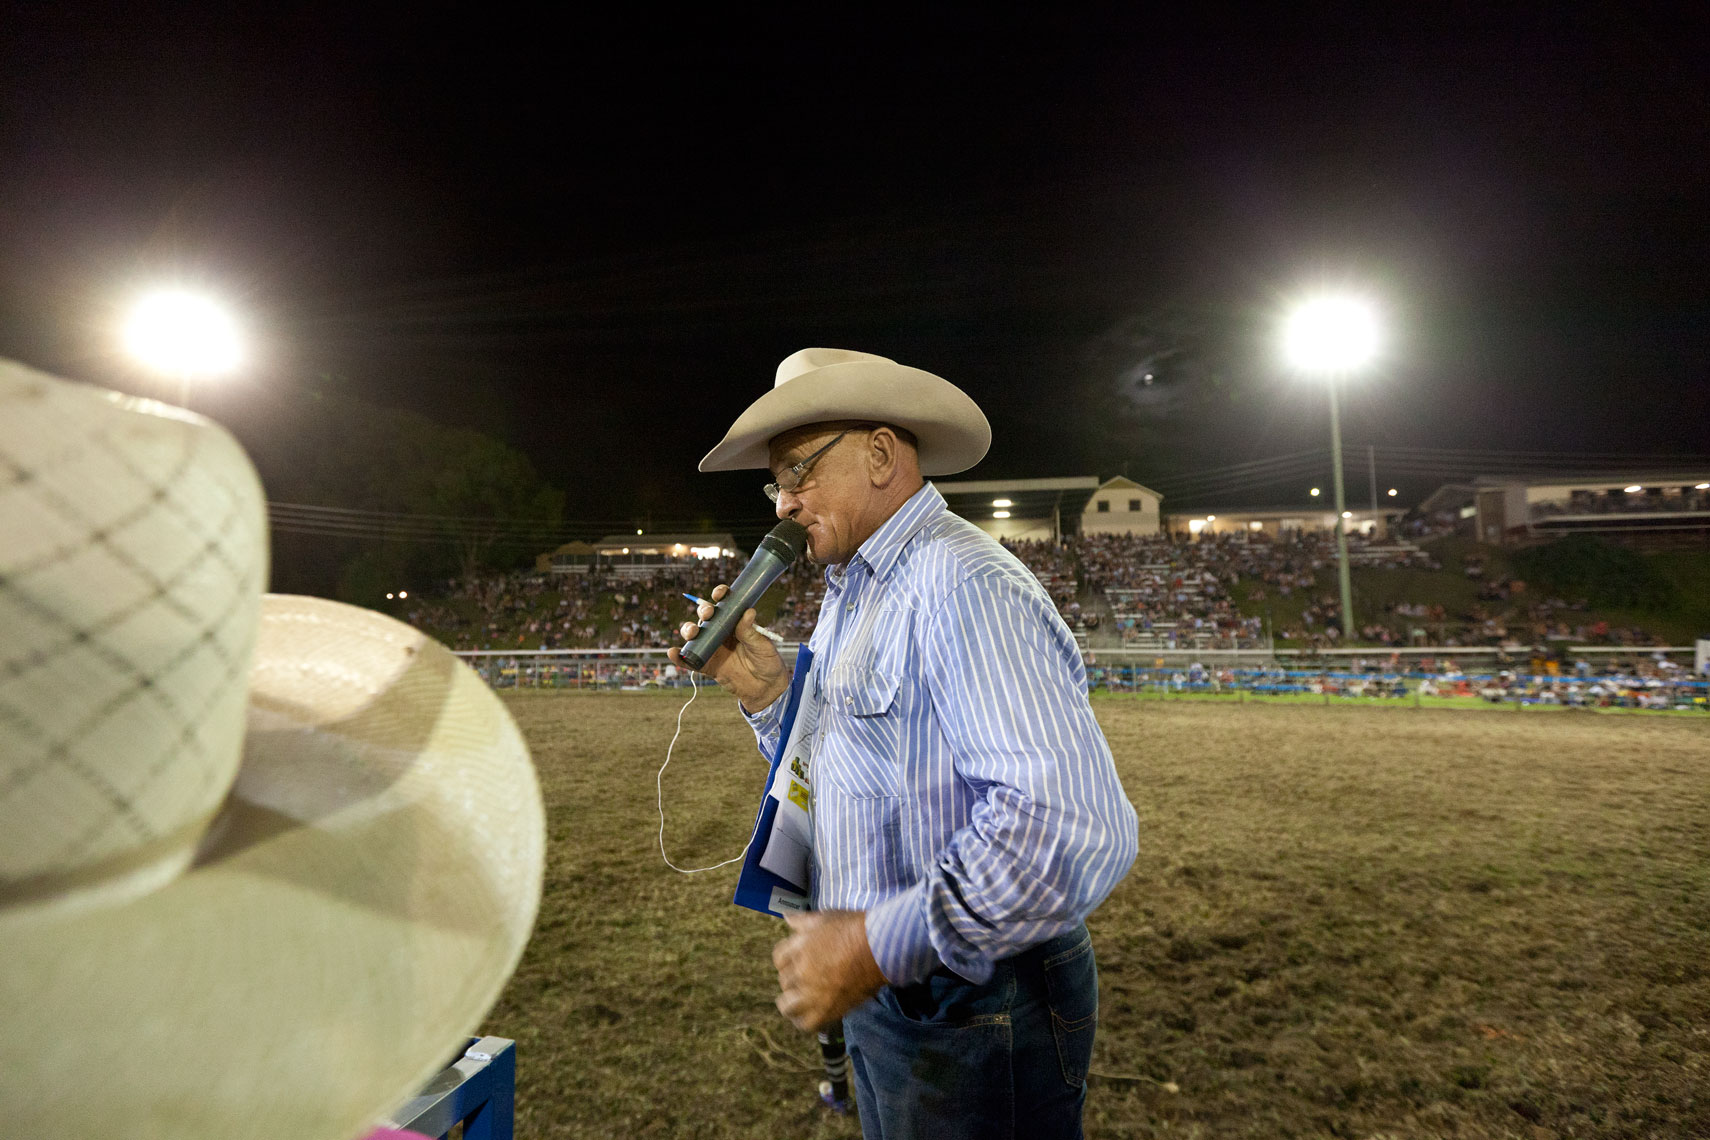 019_MacleanRodeo_MG_4981.jpg